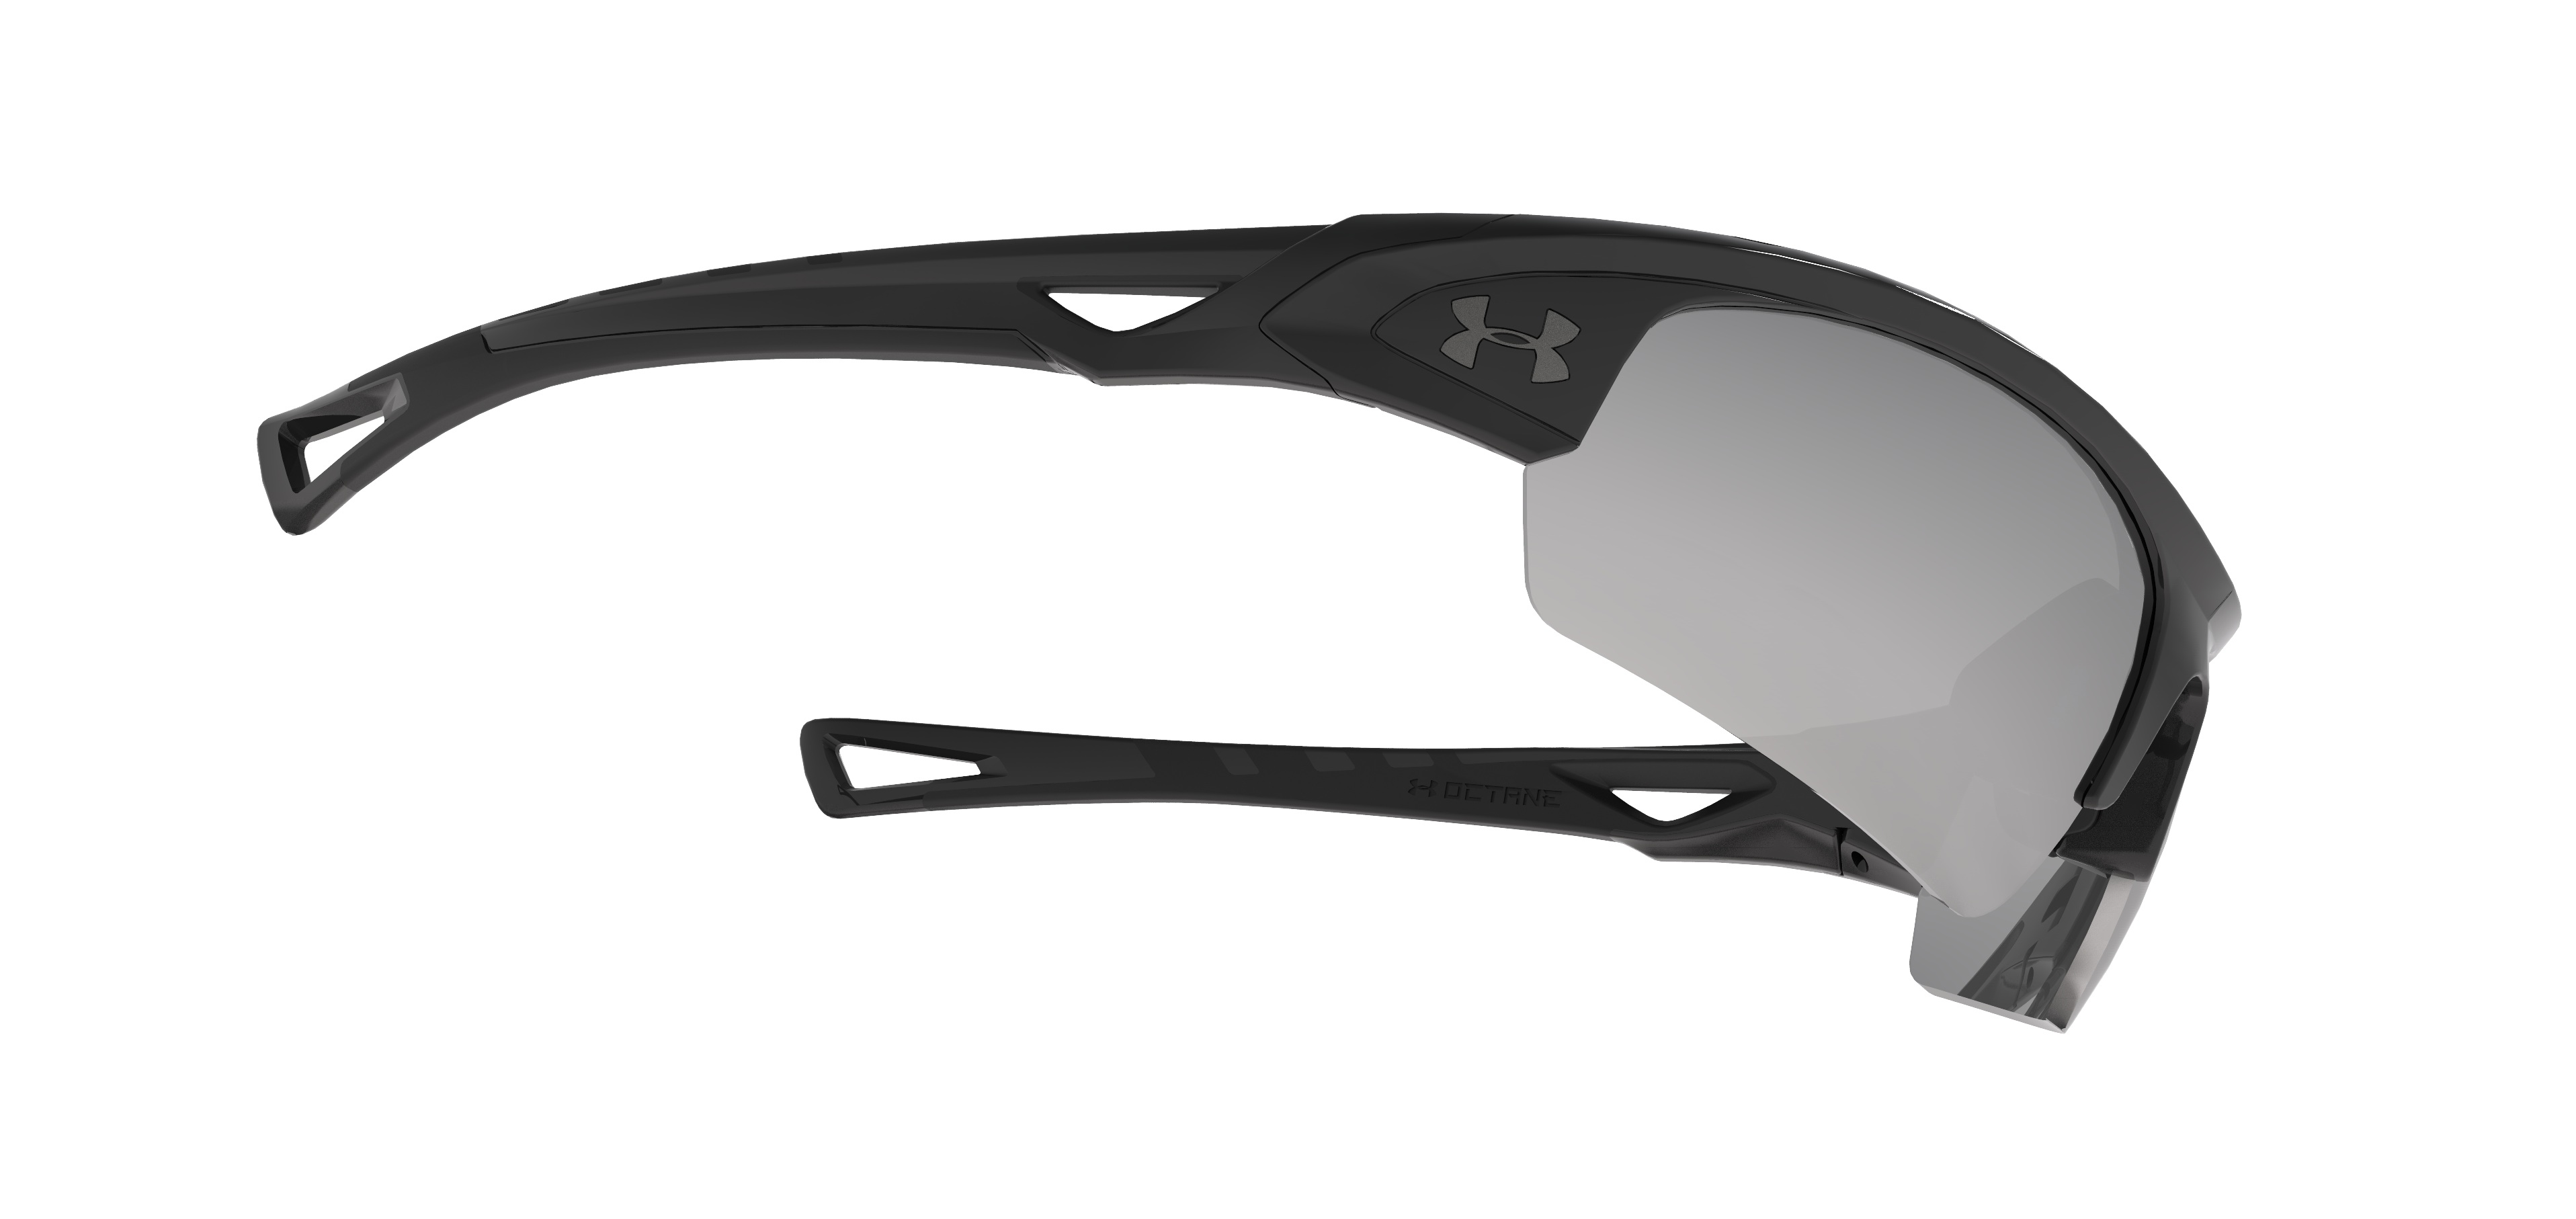 77fdfd2f40b5 Under Armour Octane Sunglasses - Review & Rating